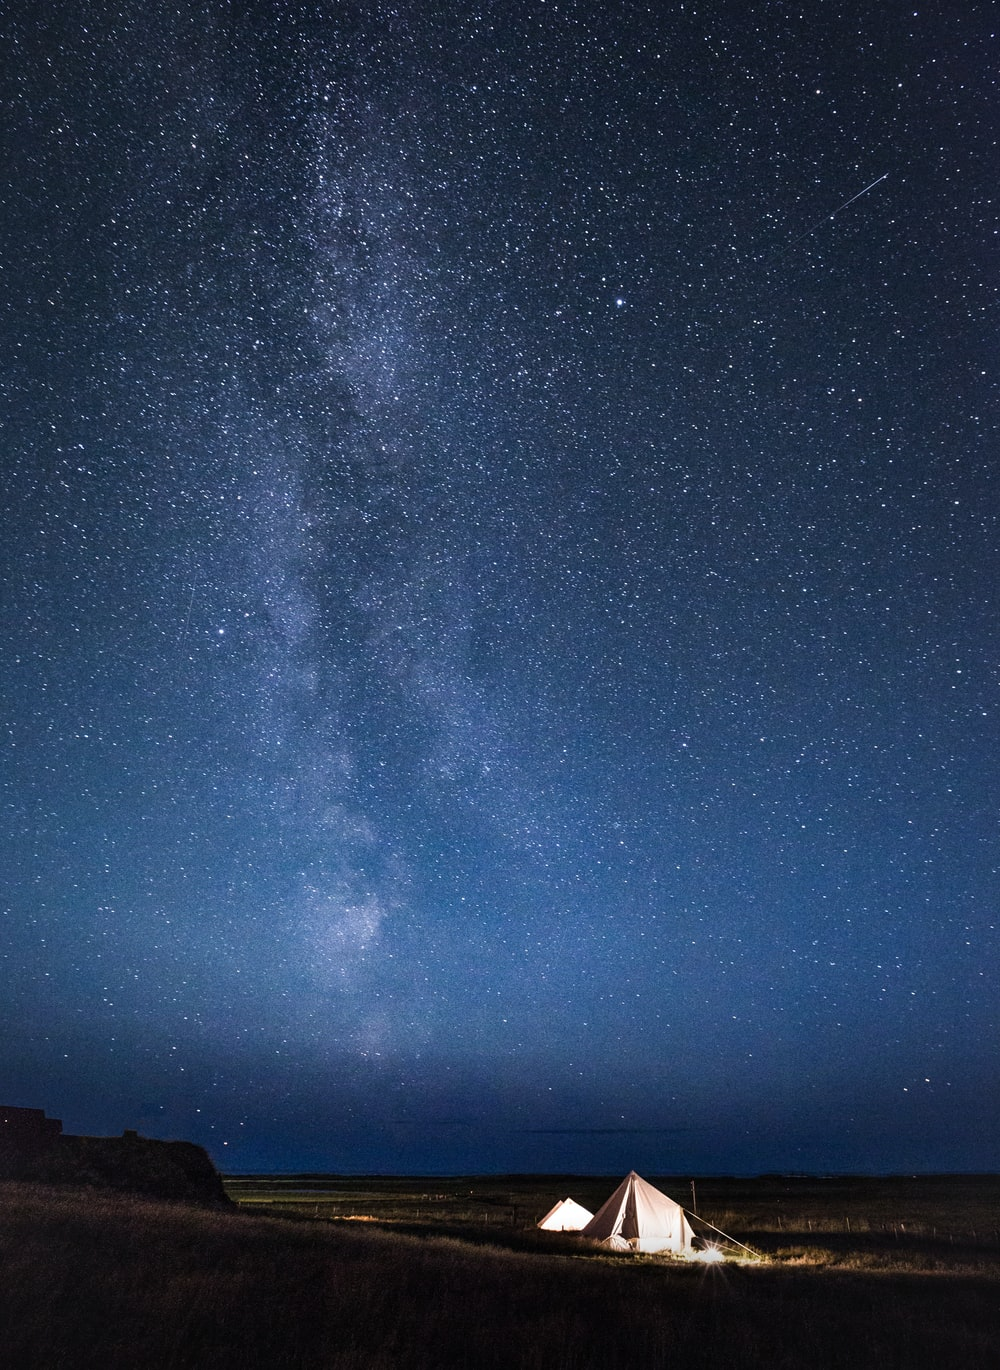 tent under milkyway at nighttime